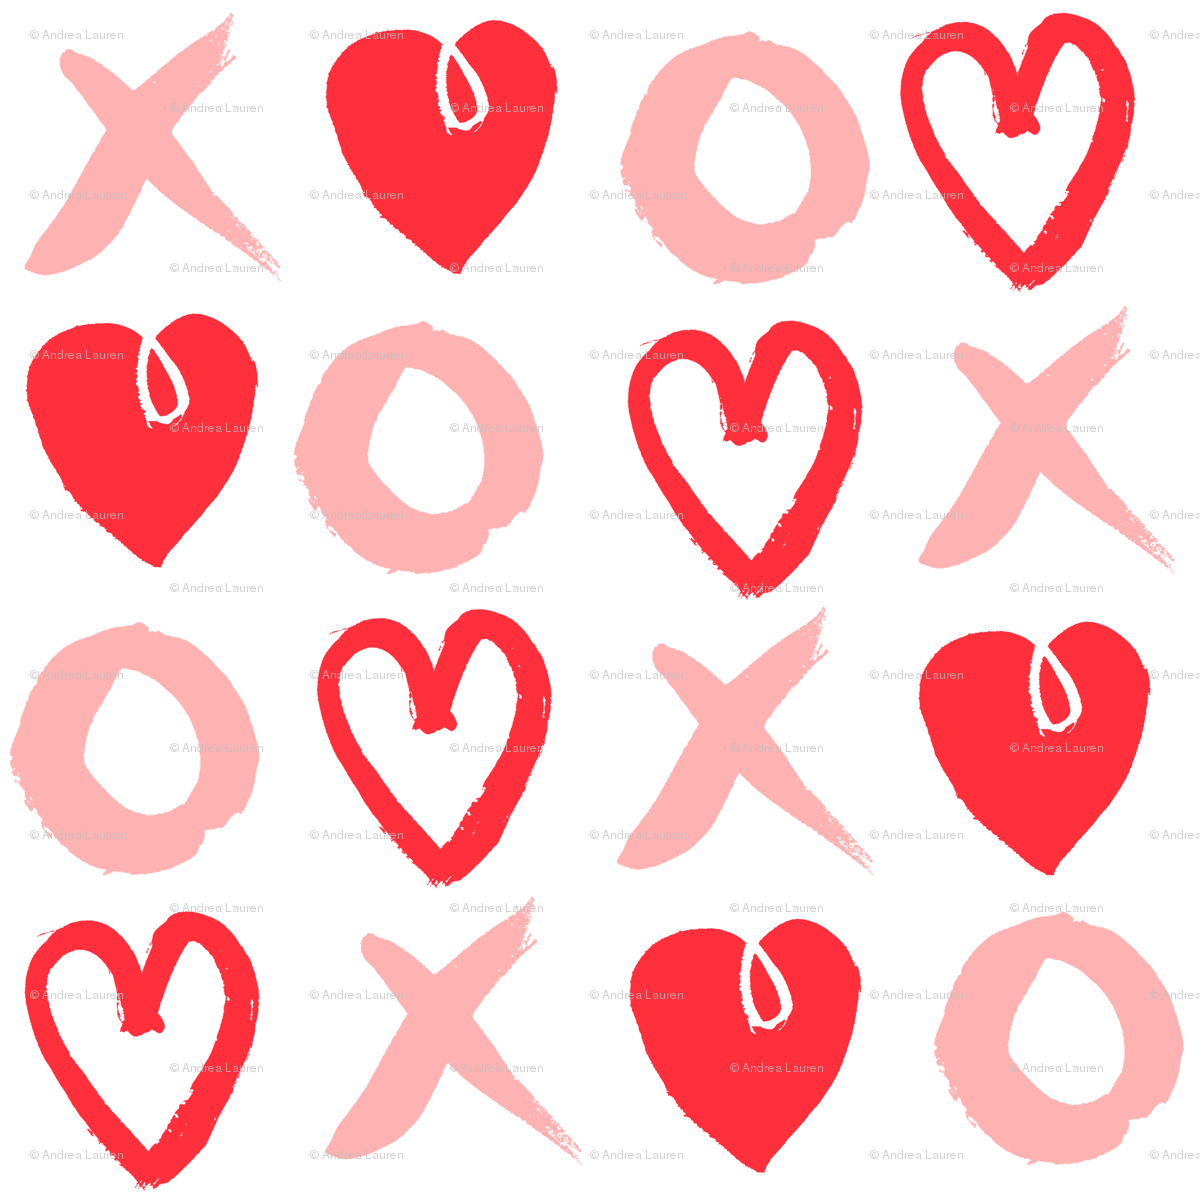 xoxo hearts pink and red heart valentines love design giftwrap andrea_lauren spoonflower